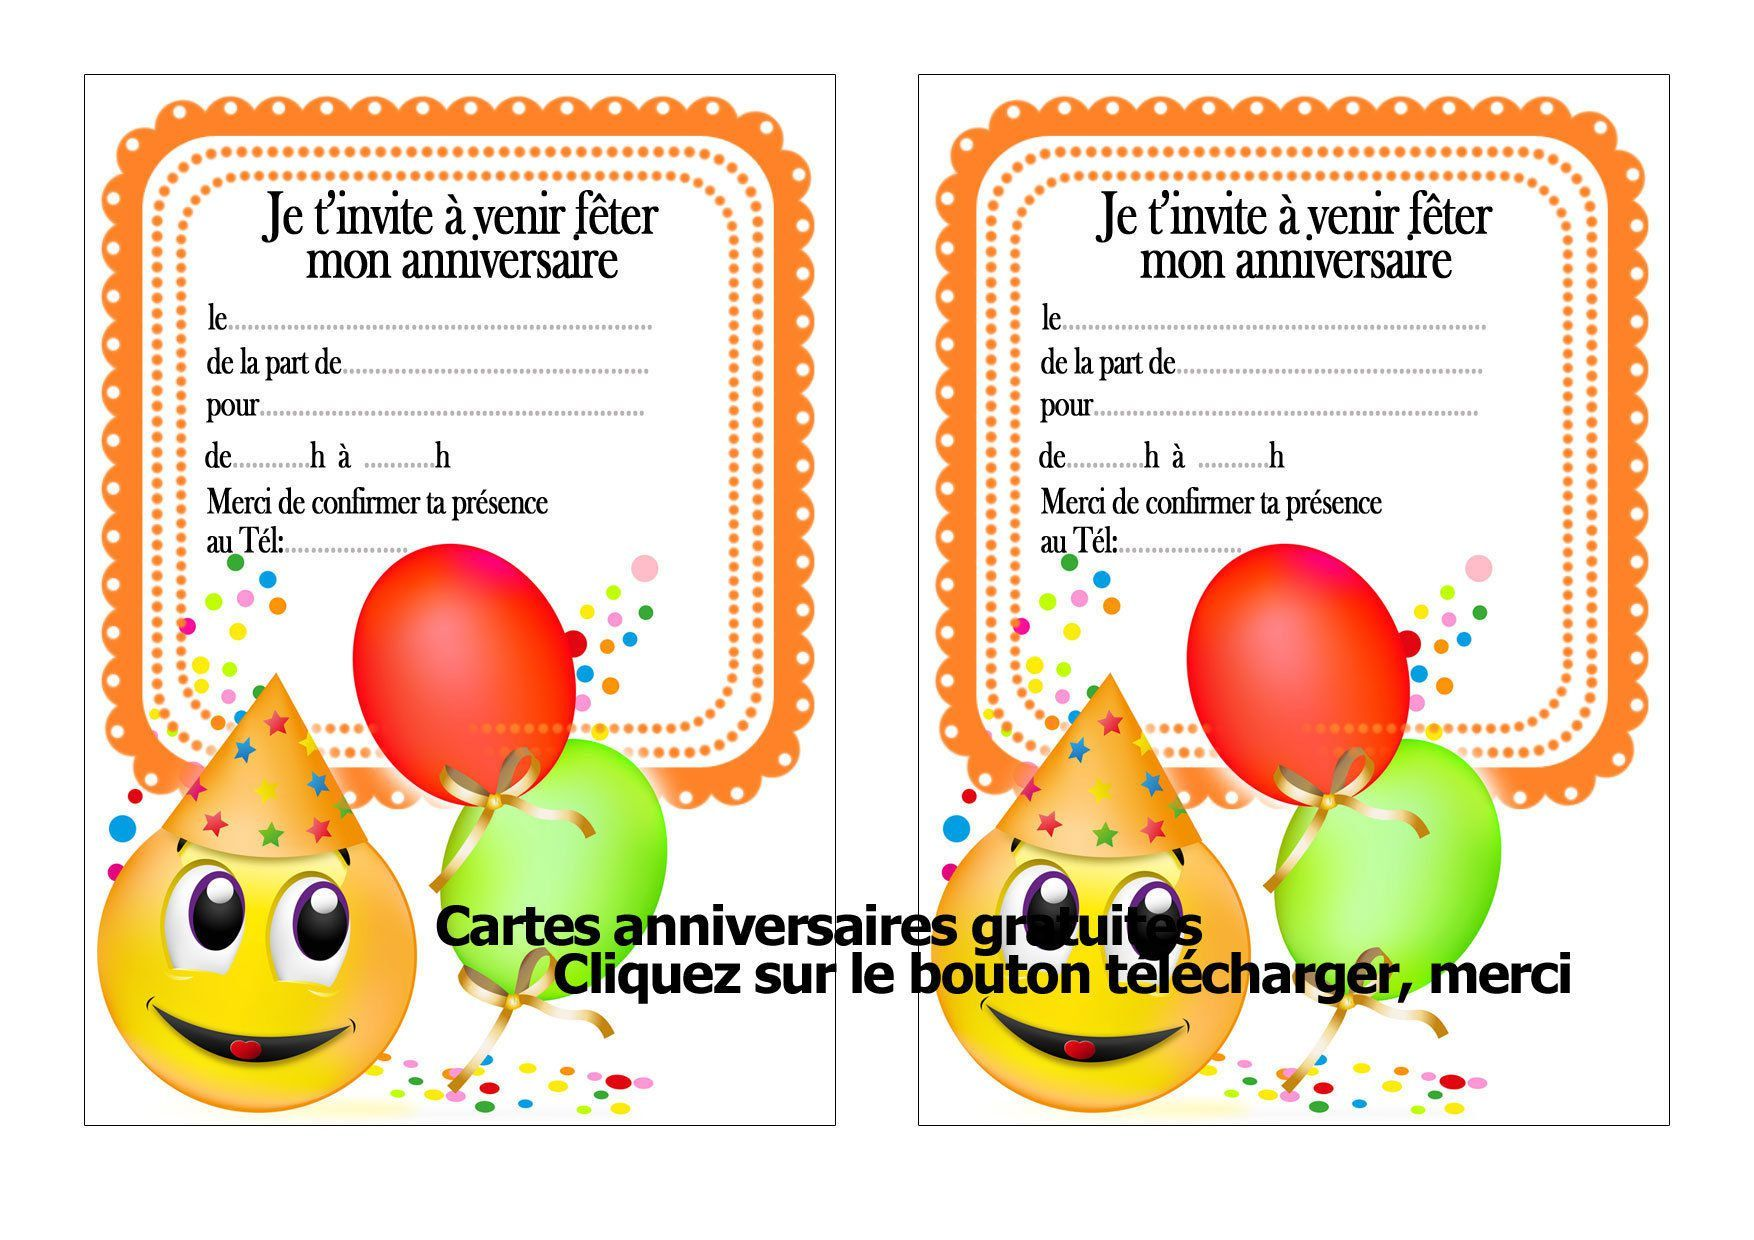 carte invitation anniversaire   carte invitation anniversaire gratuite